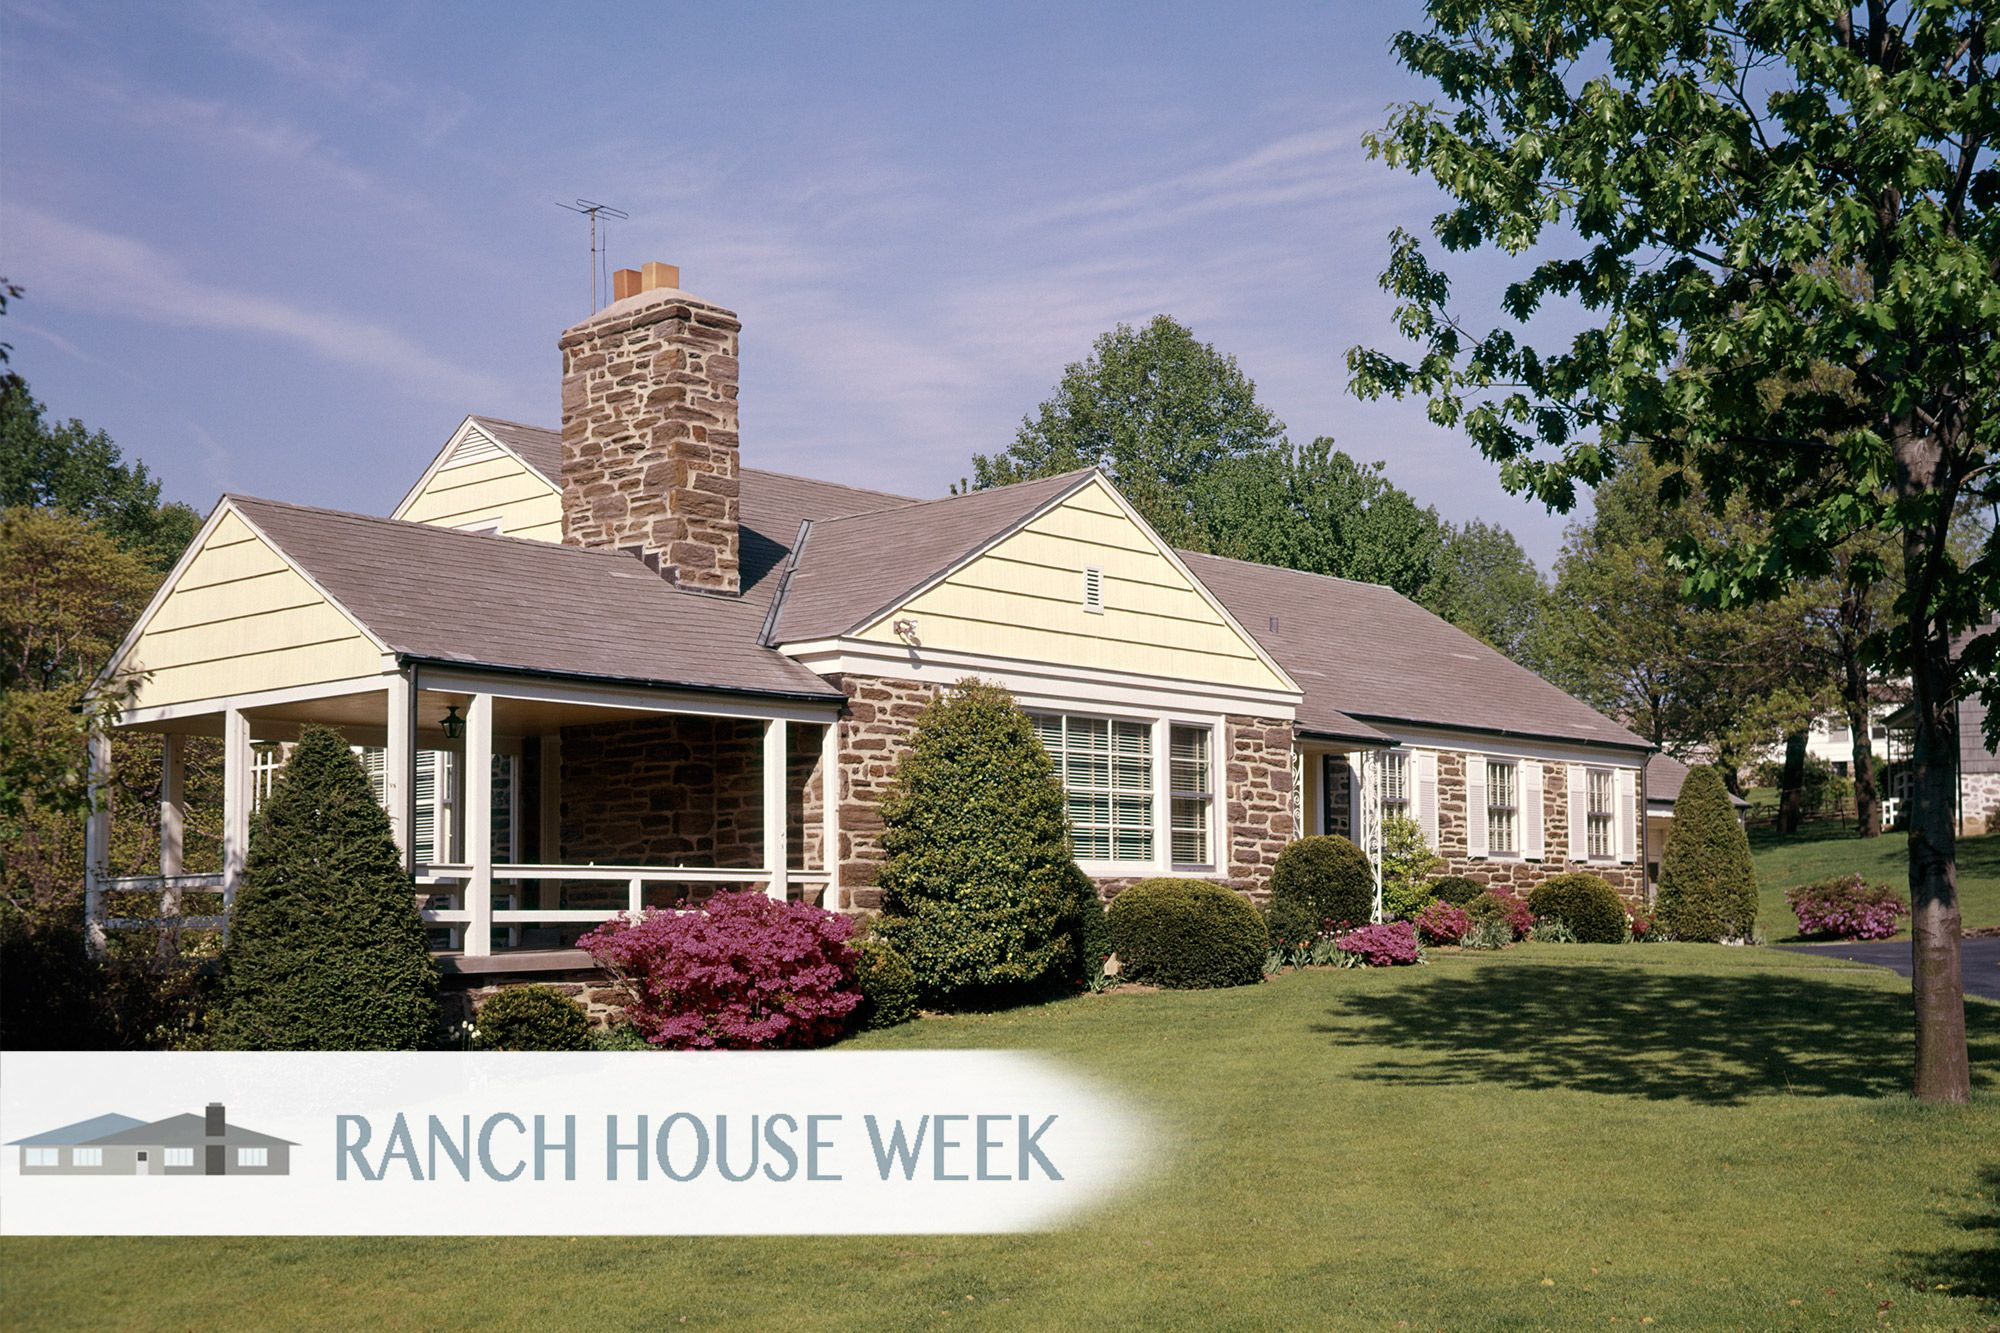 Ranch houses were one of the most popular home styles of the century, the  embodiment of suburbia. But what really constitutes a ranch house?